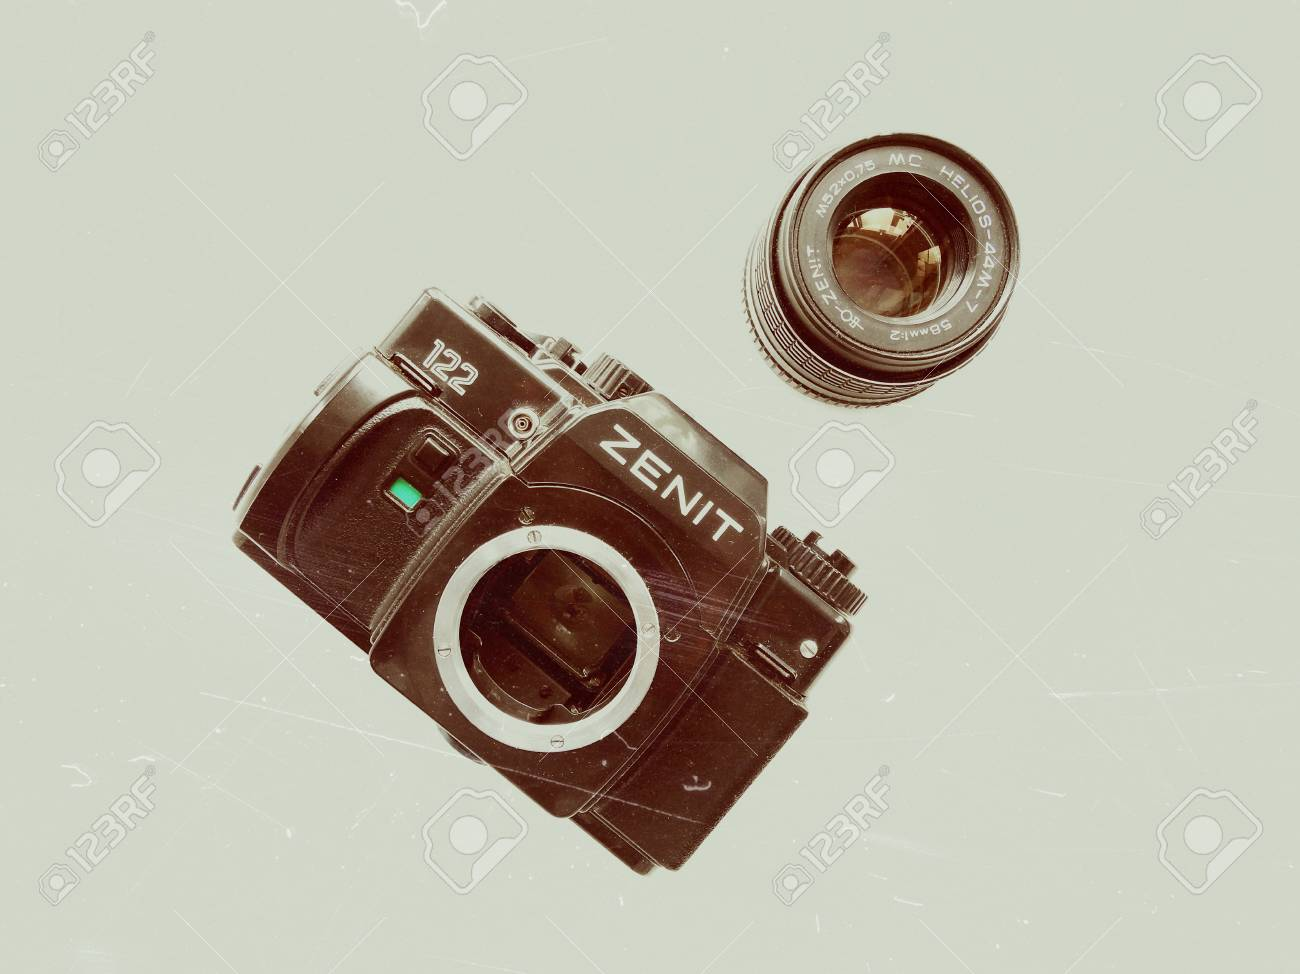 Old Camera Zenith Vintage Style Retro Background Wallpaper Photography Stock Photo Picture And Royalty Free Image Image 87413240